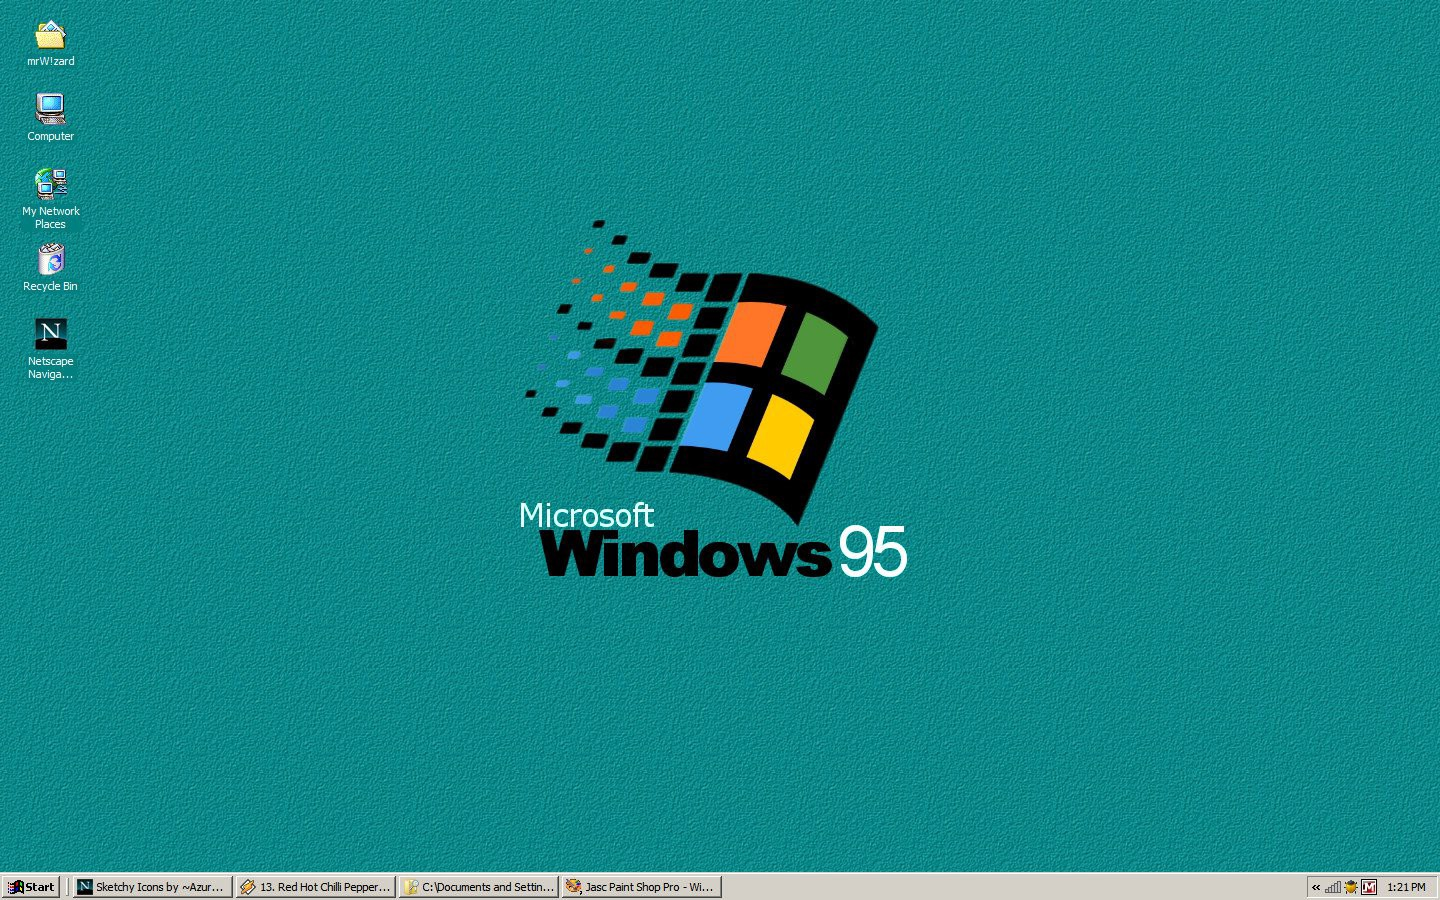 Microsoft windows 95 bootable iso full free download for Windows 95 iso